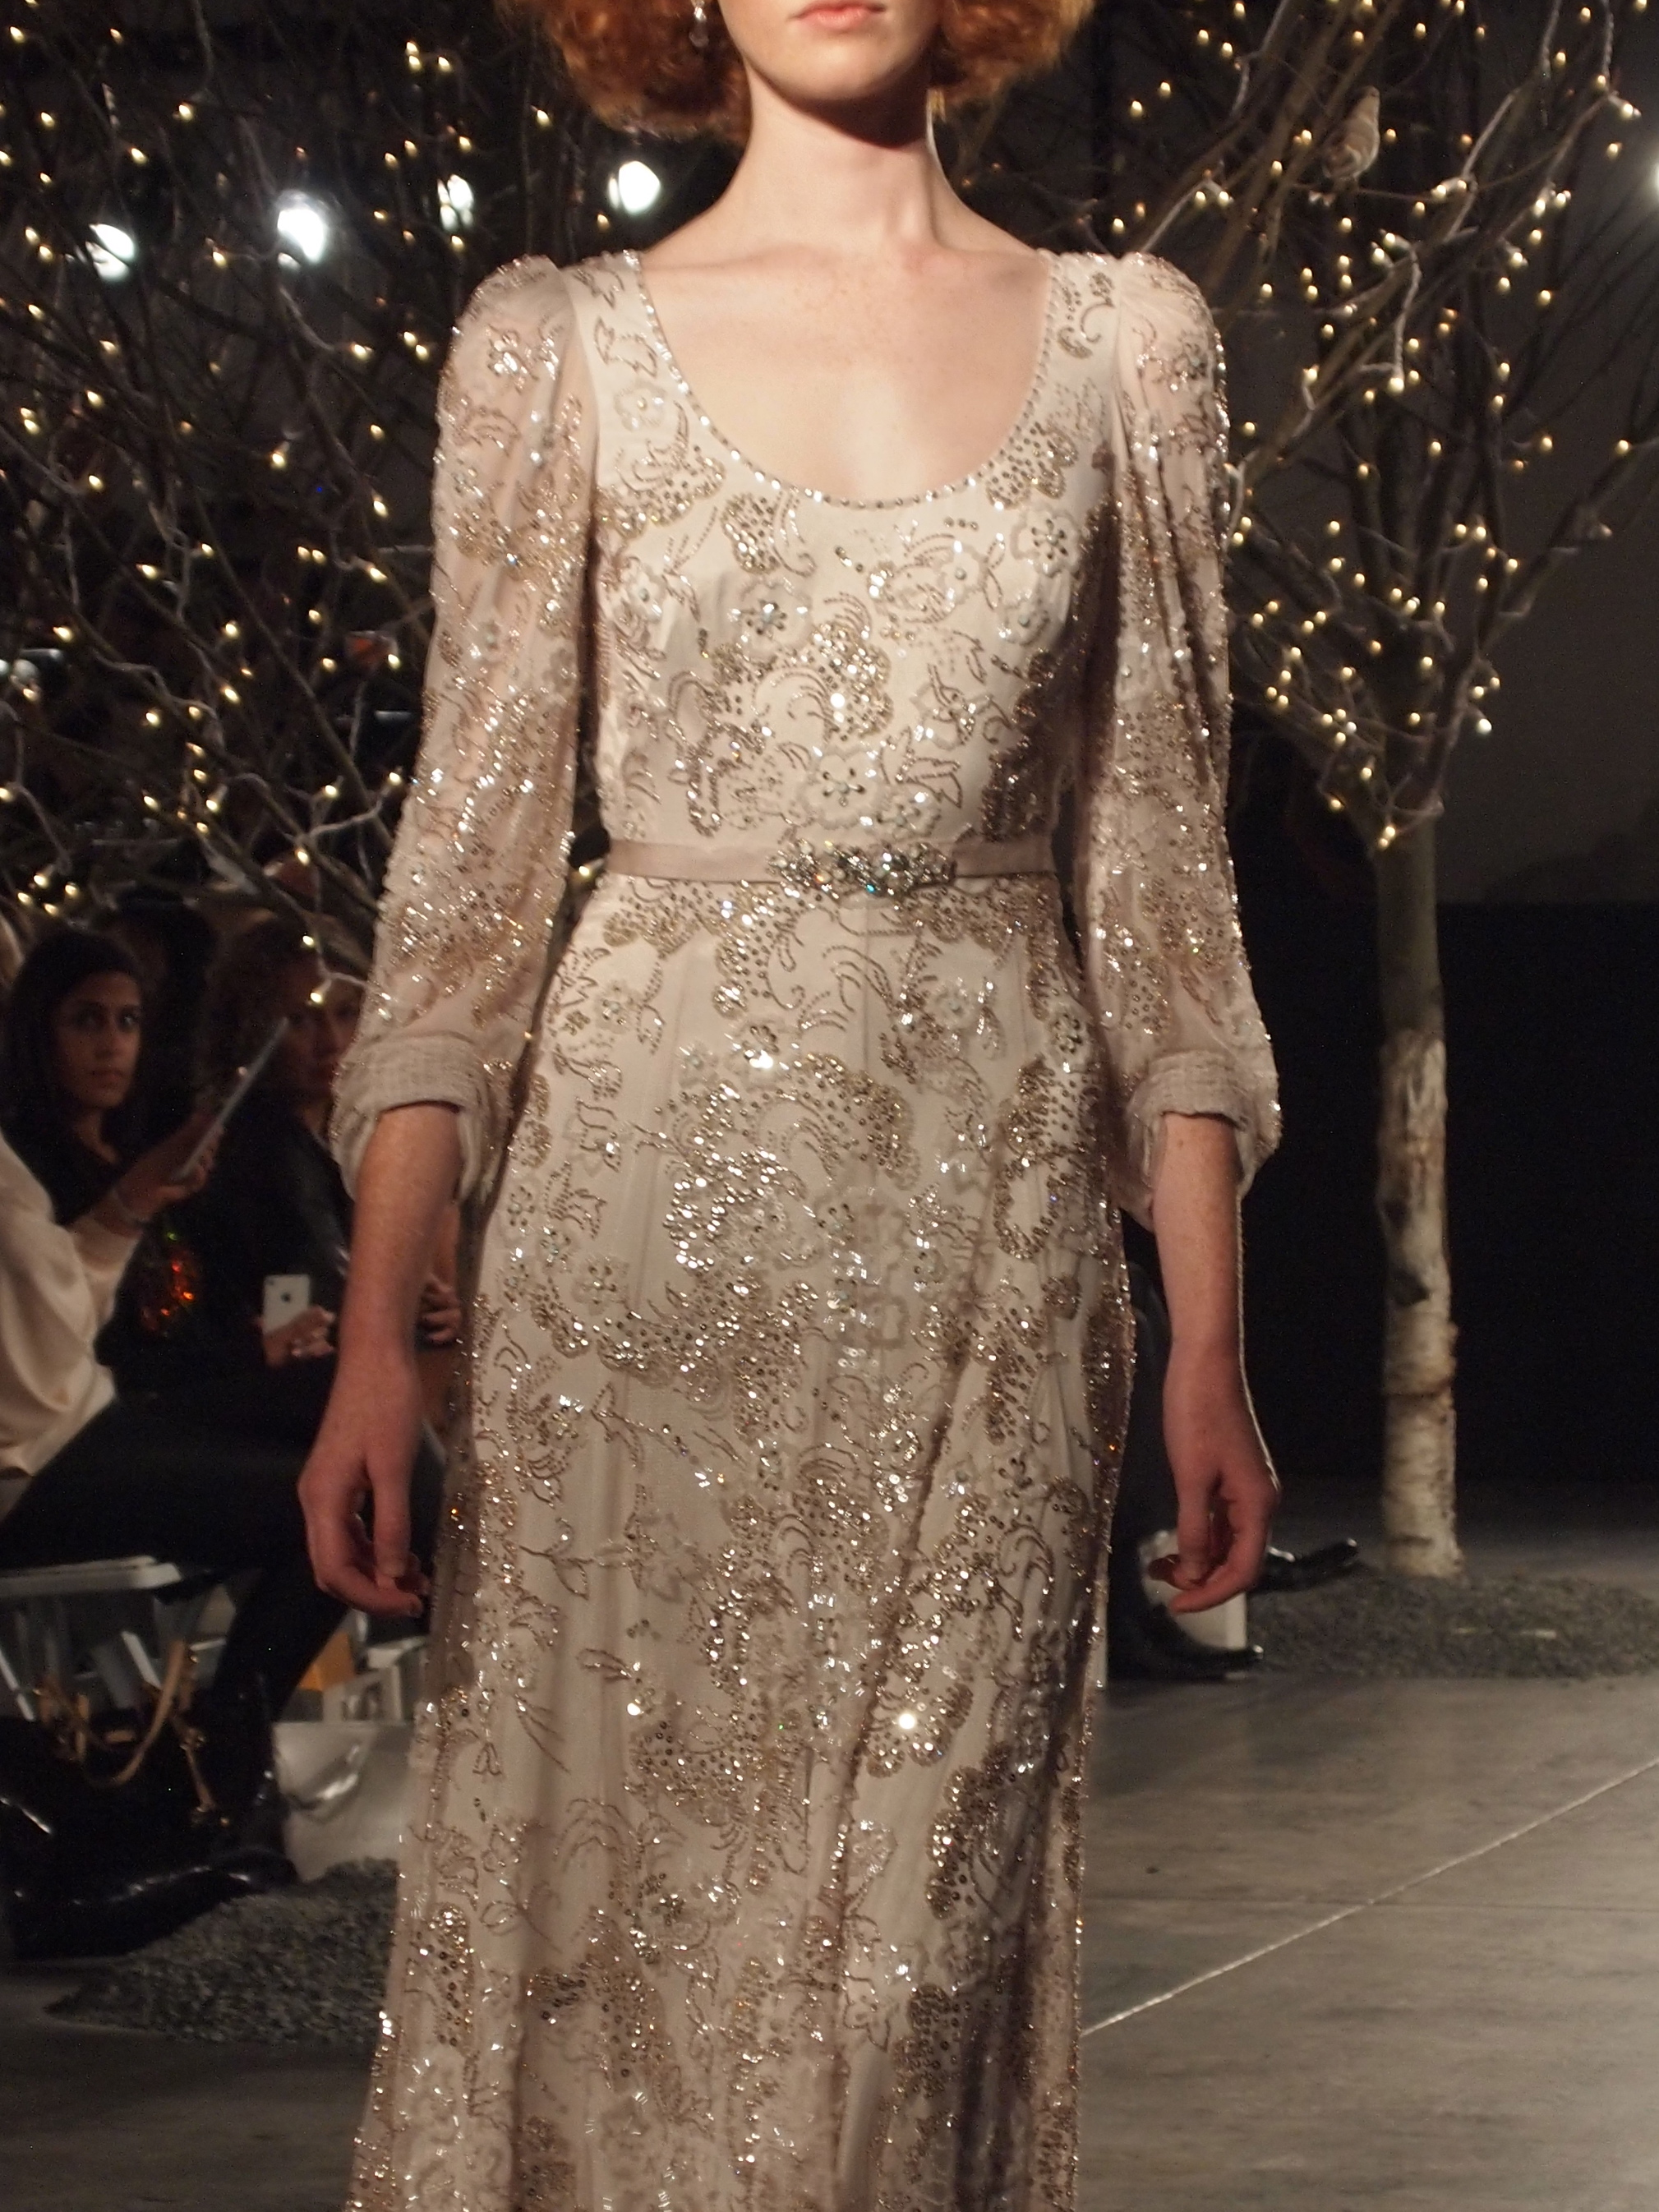 Bridal Fashion Week Jenny Packham Runway Show Little